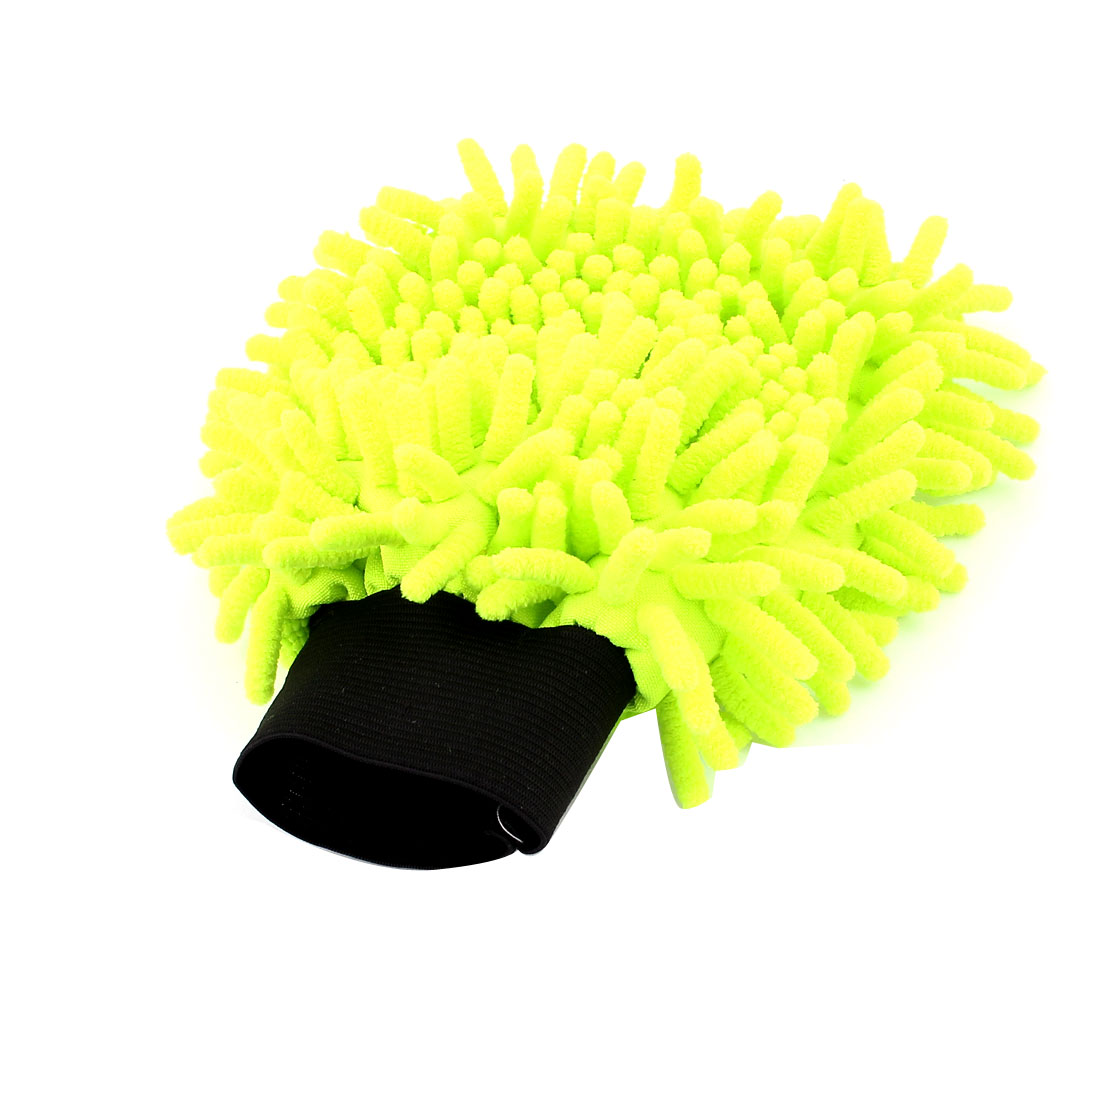 Household Car Window Wash Cleaning Cloth Duster Towel Mitt Glove Yellow Green